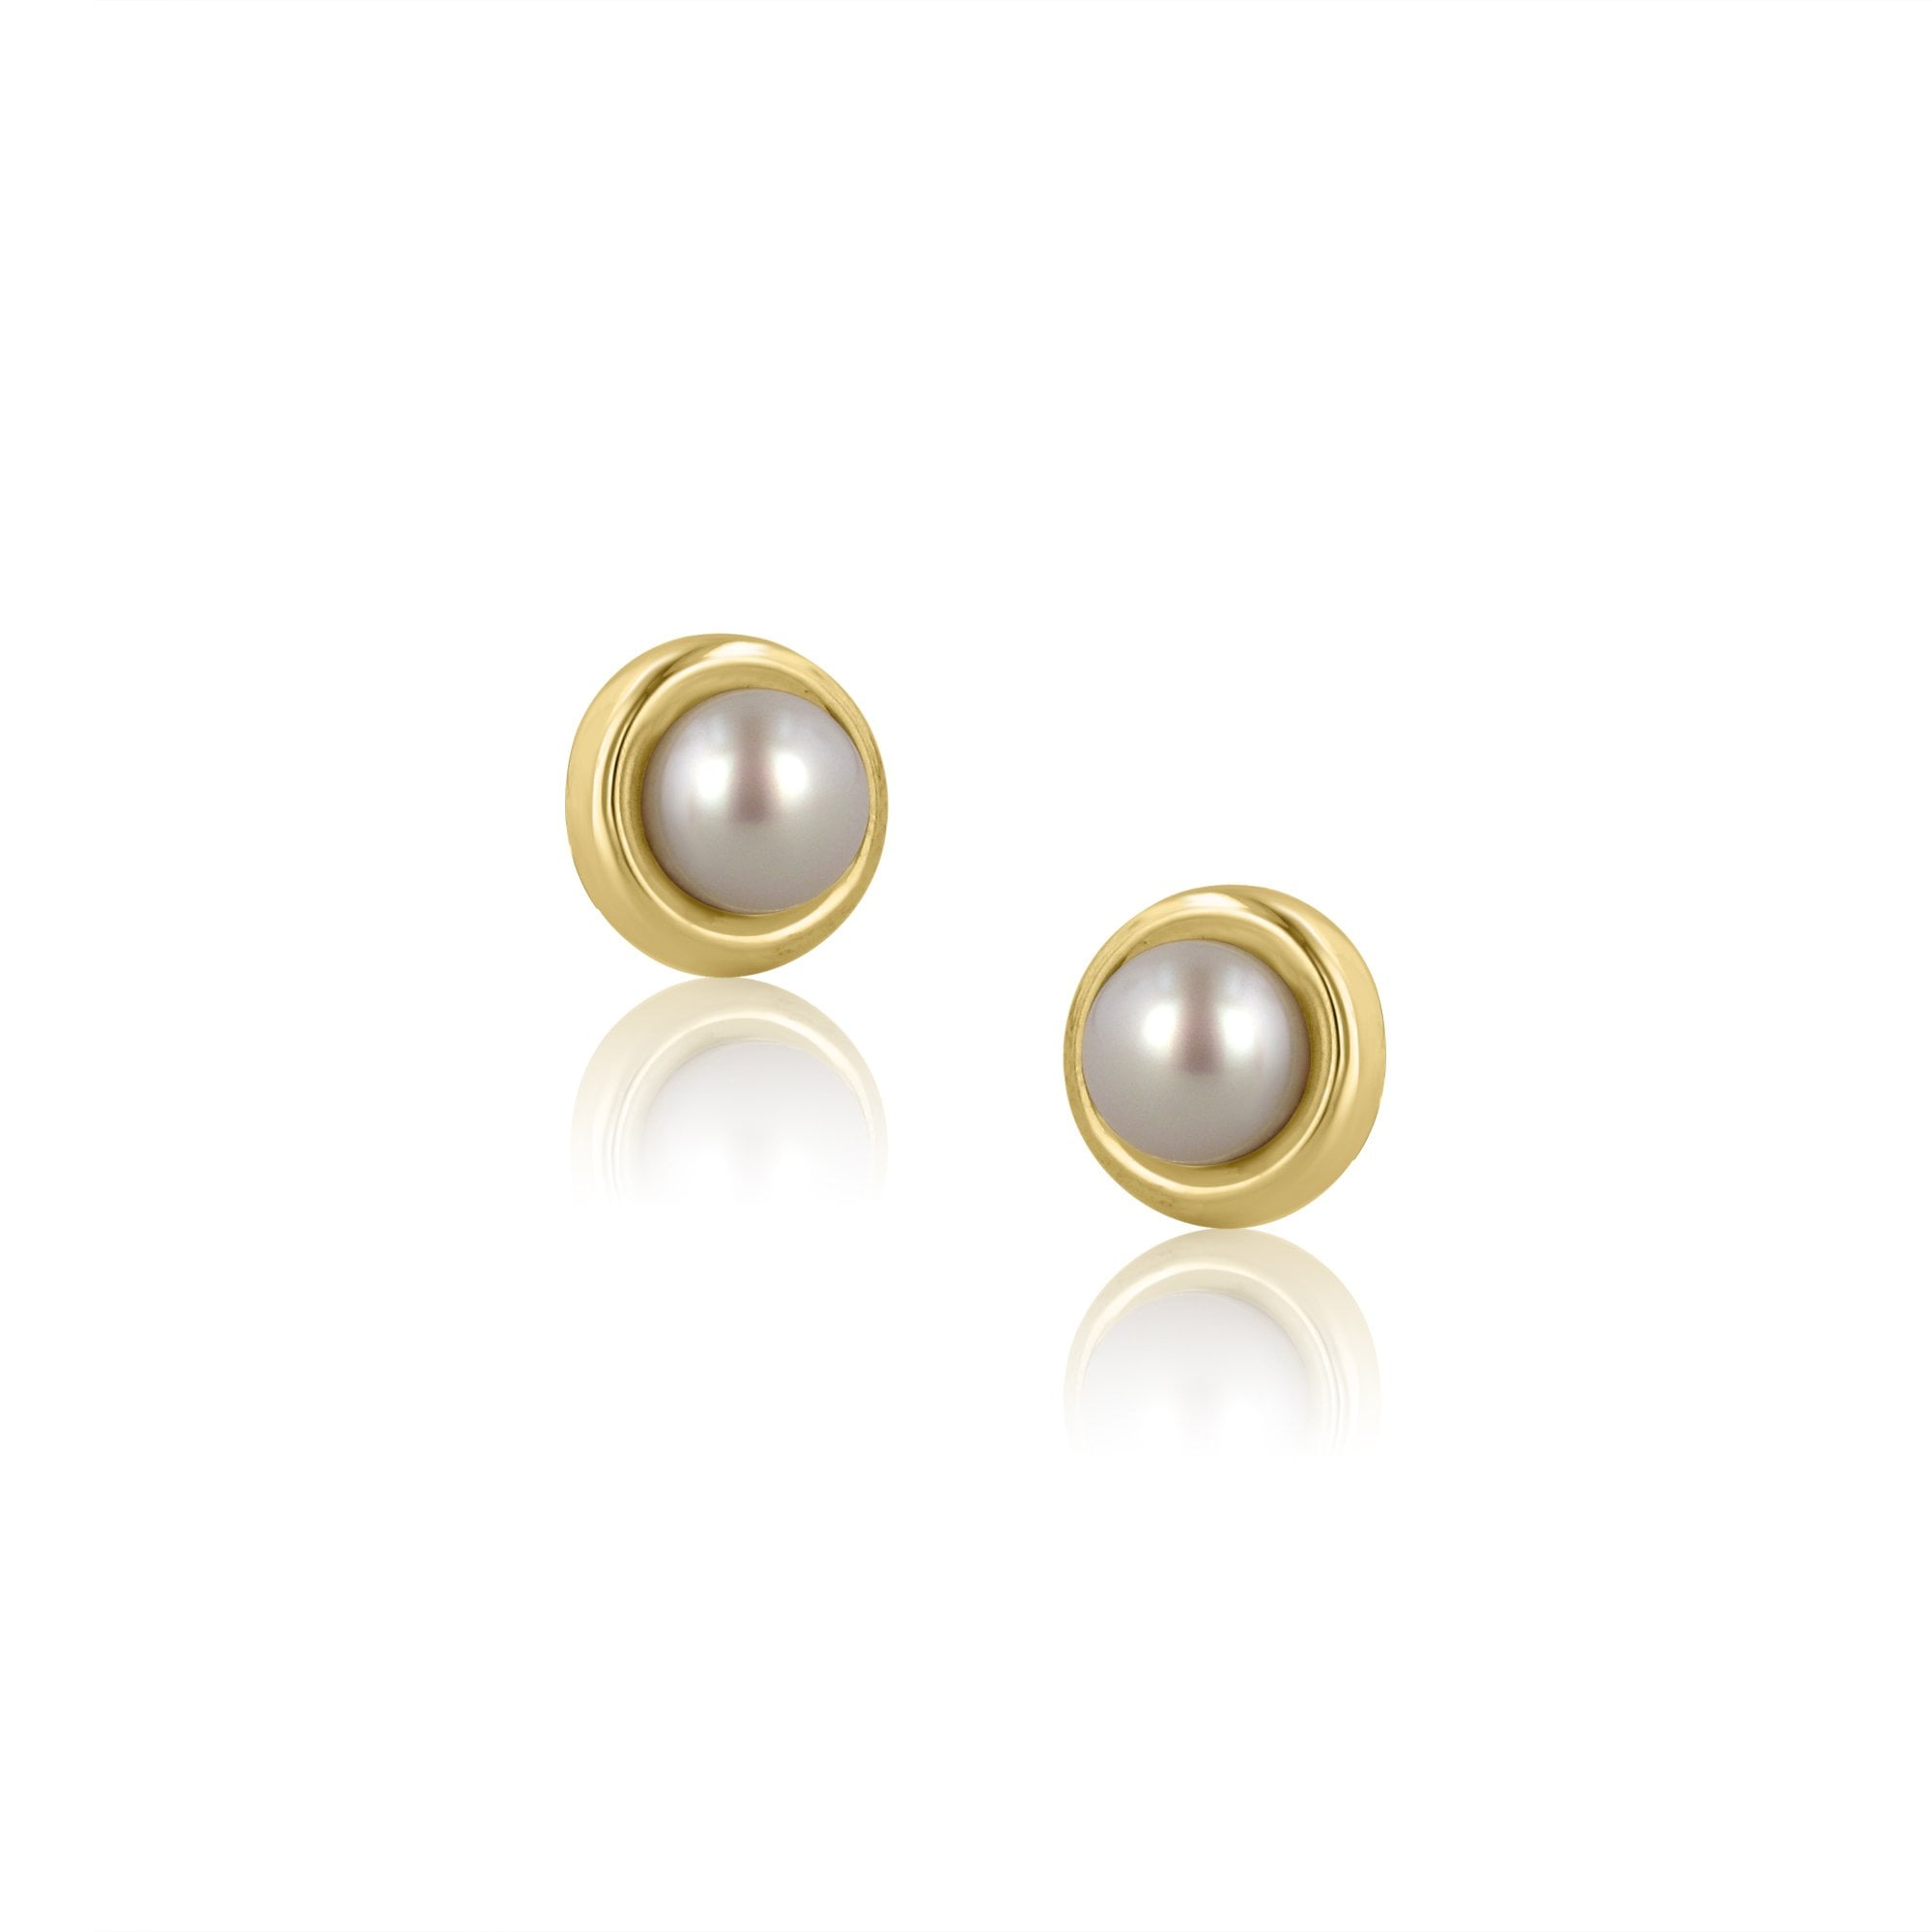 9ef559209 9ct Yellow Gold 6mm White Freshwater Pearl Stud Earrings - Womens from  Avanti of Ashbourne Ltd UK